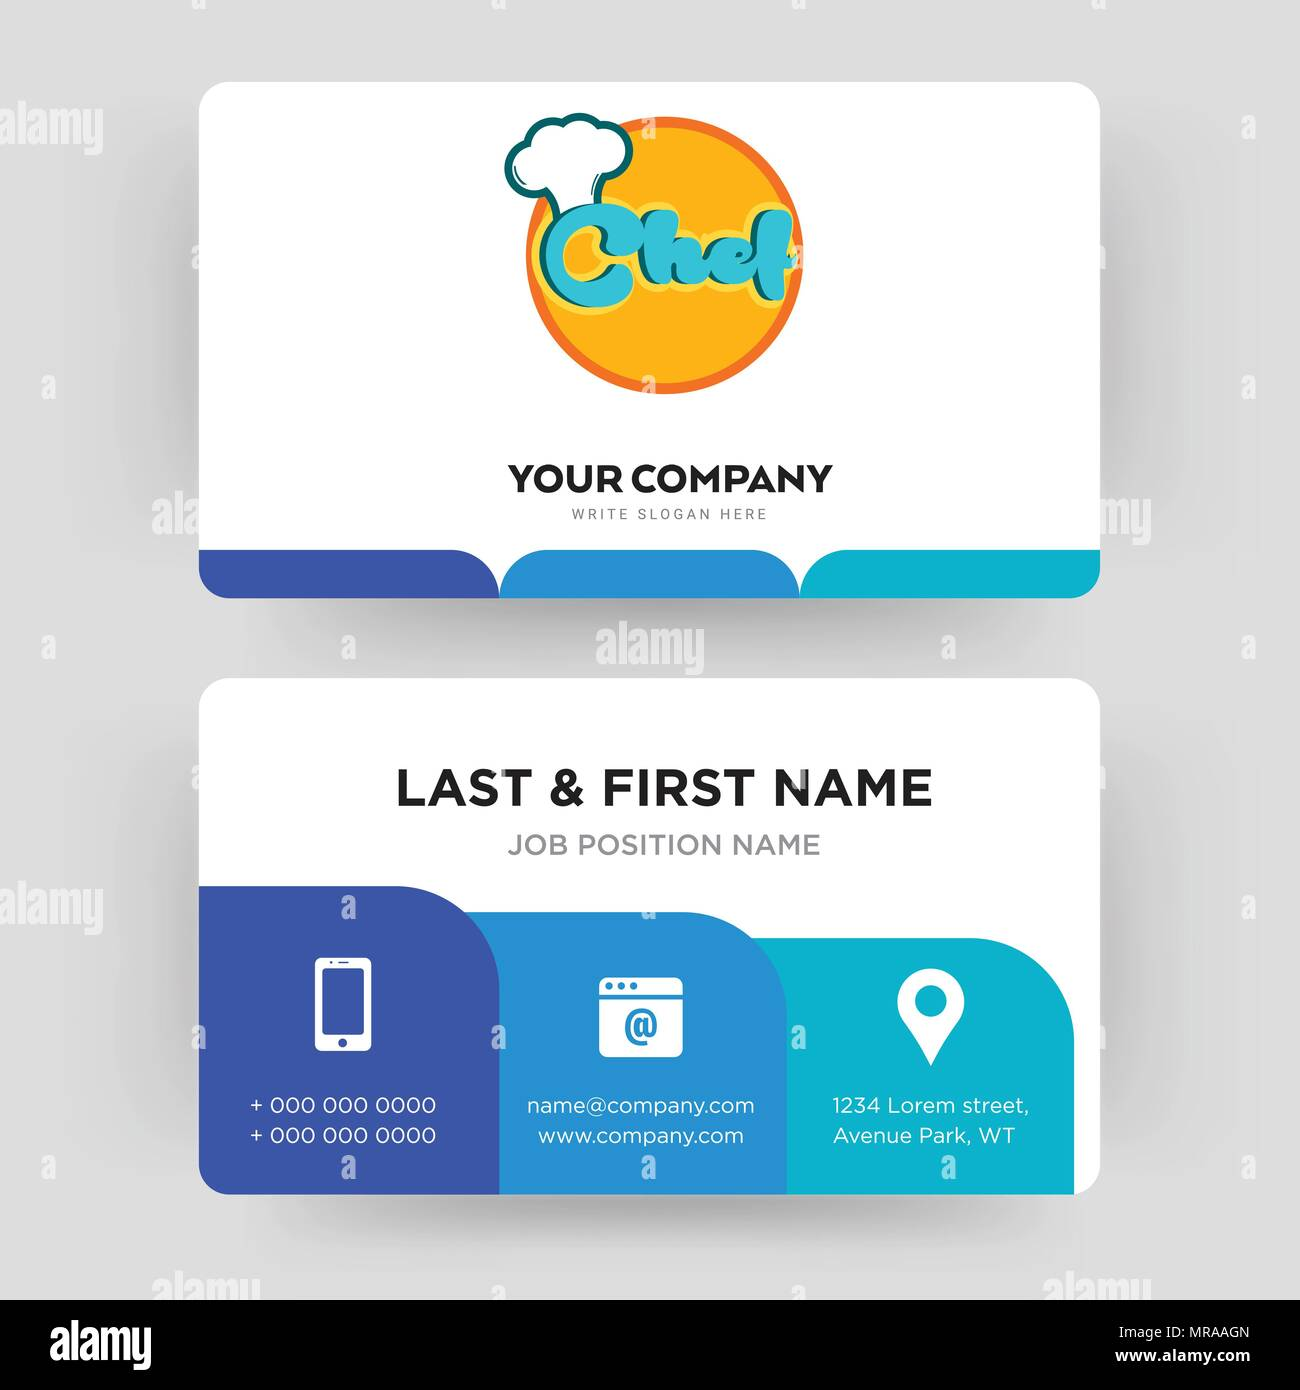 Chef business card design template visiting for your company chef business card design template visiting for your company modern creative and clean identity card vector colourmoves